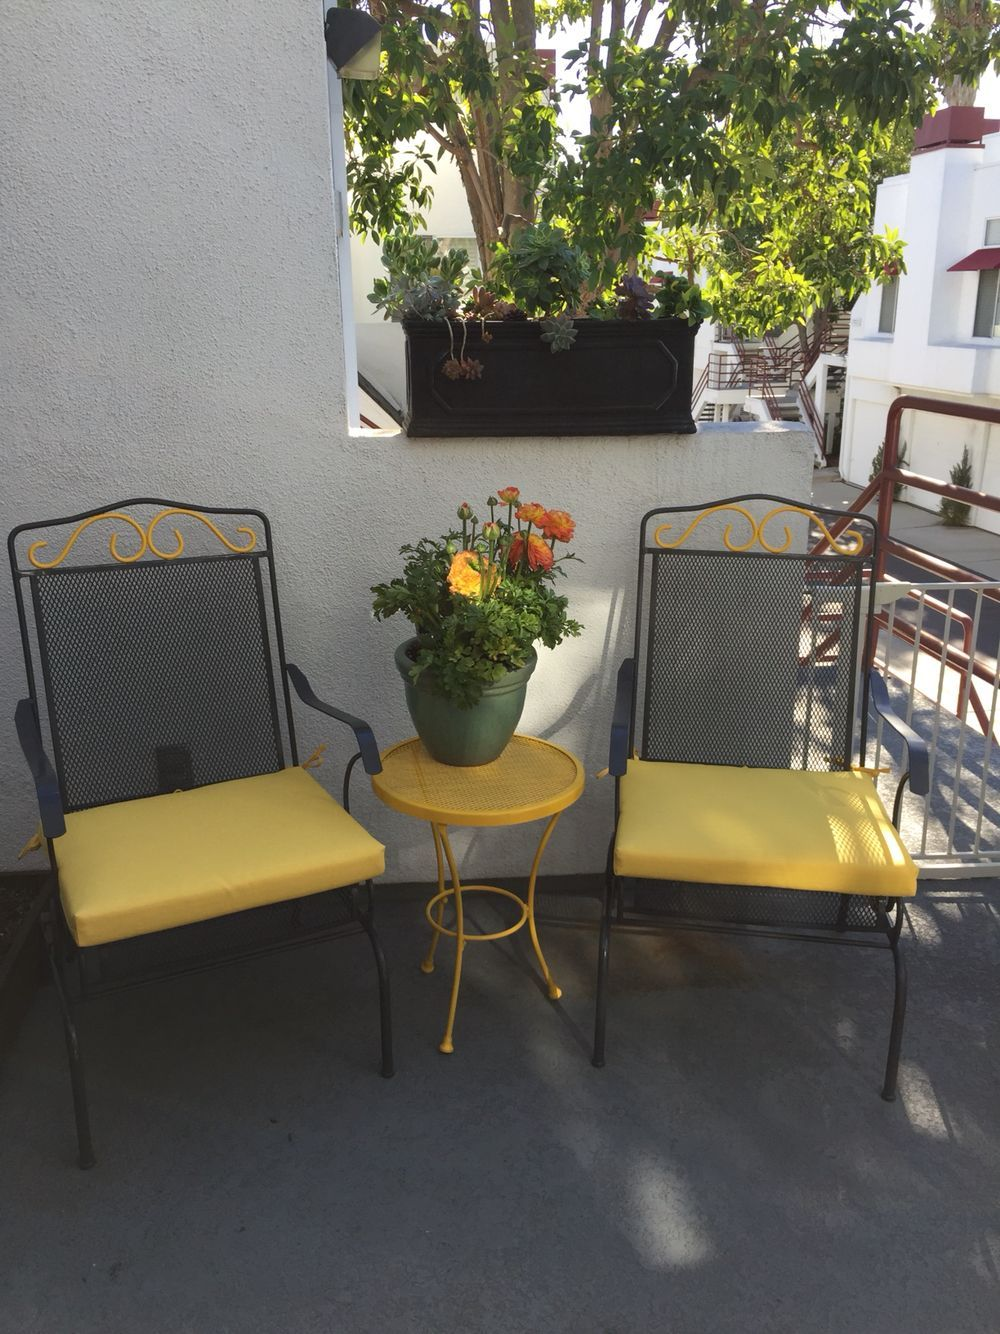 Yellow and gray up-cycled patio furniture! Diy for the win! - Yellow And Gray Up-cycled Patio Furniture! Diy For The Win! Pool